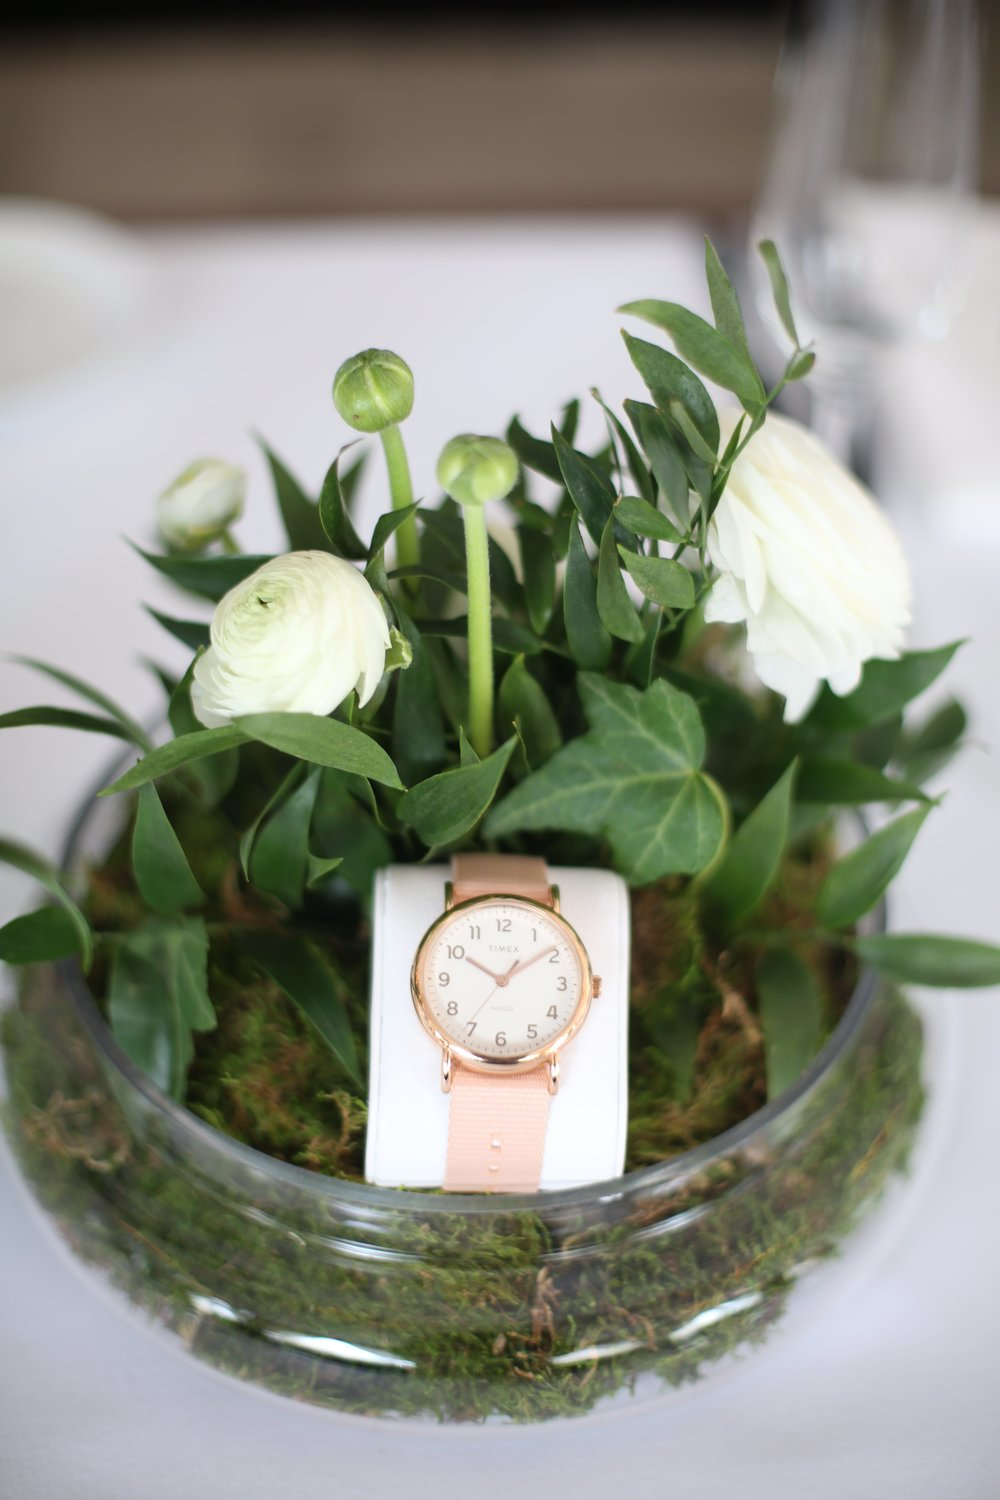 Timex Watch Floral Product Display- B Floral